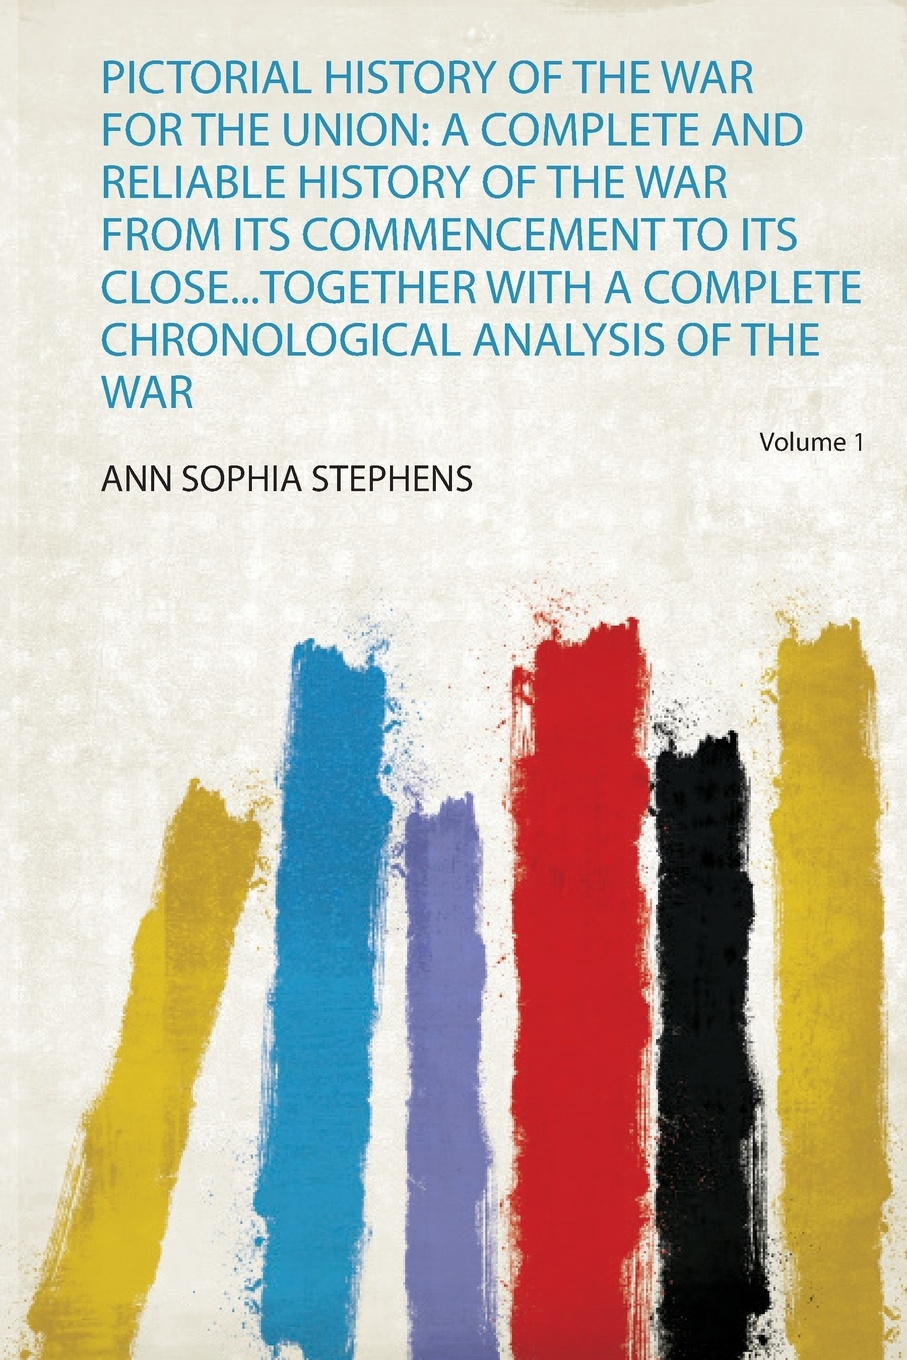 Pictorial History of the War for the Union. a Complete and Reliable History of the War from Its Commencement to Its Close...Together With a Complete Chronological Analysis of the War the future of war